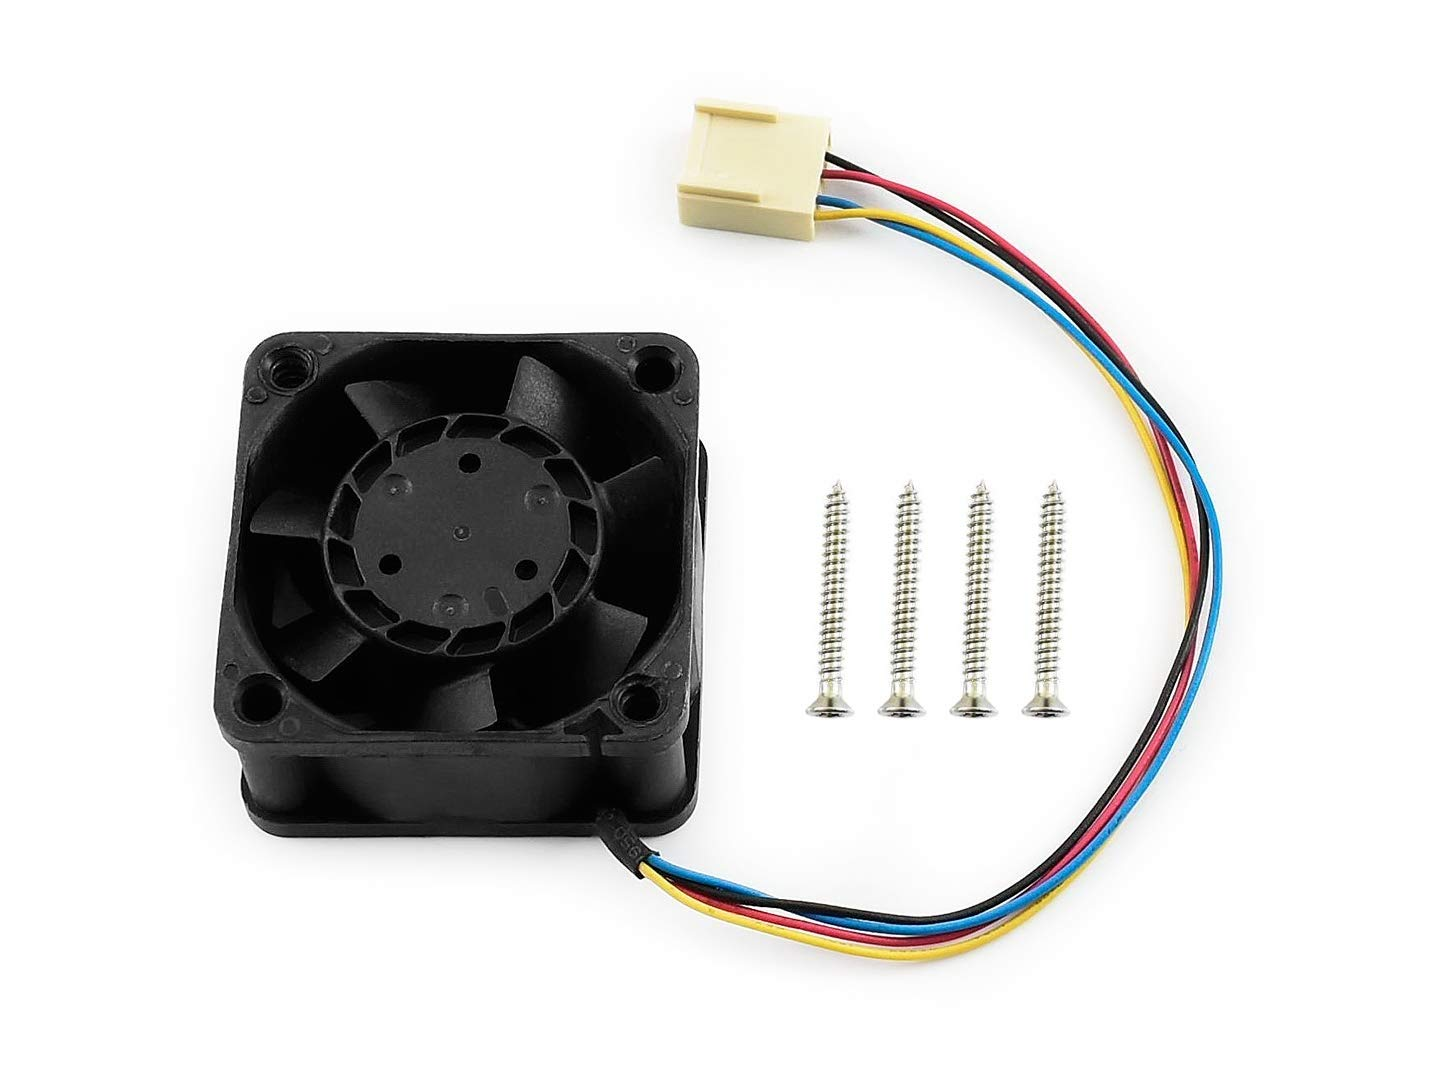 Dedicated DC 5V Cooling Fan for NVIDIA Jetson Nano Developer Kit PWM Speed Adjustment Strong Cooling Air Fan 40mm×40mm×20mm with 4PIN Reverse-Proof Connector